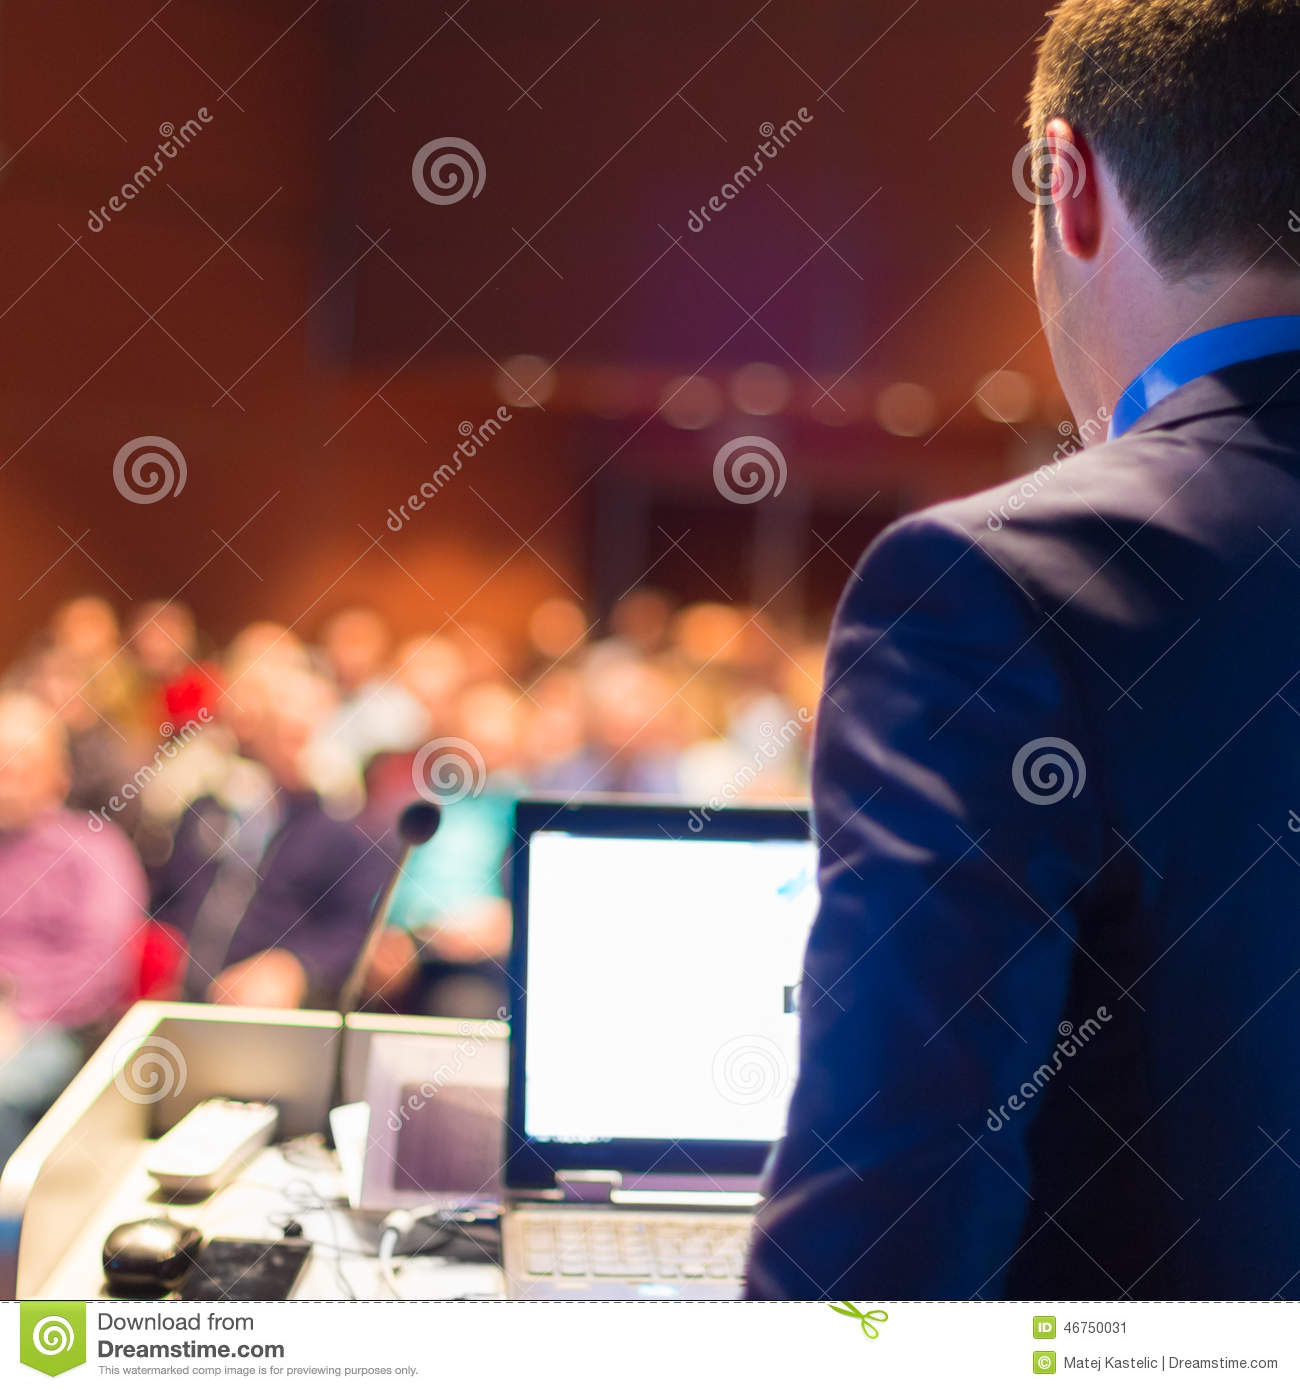 how to become a speaker at conferences